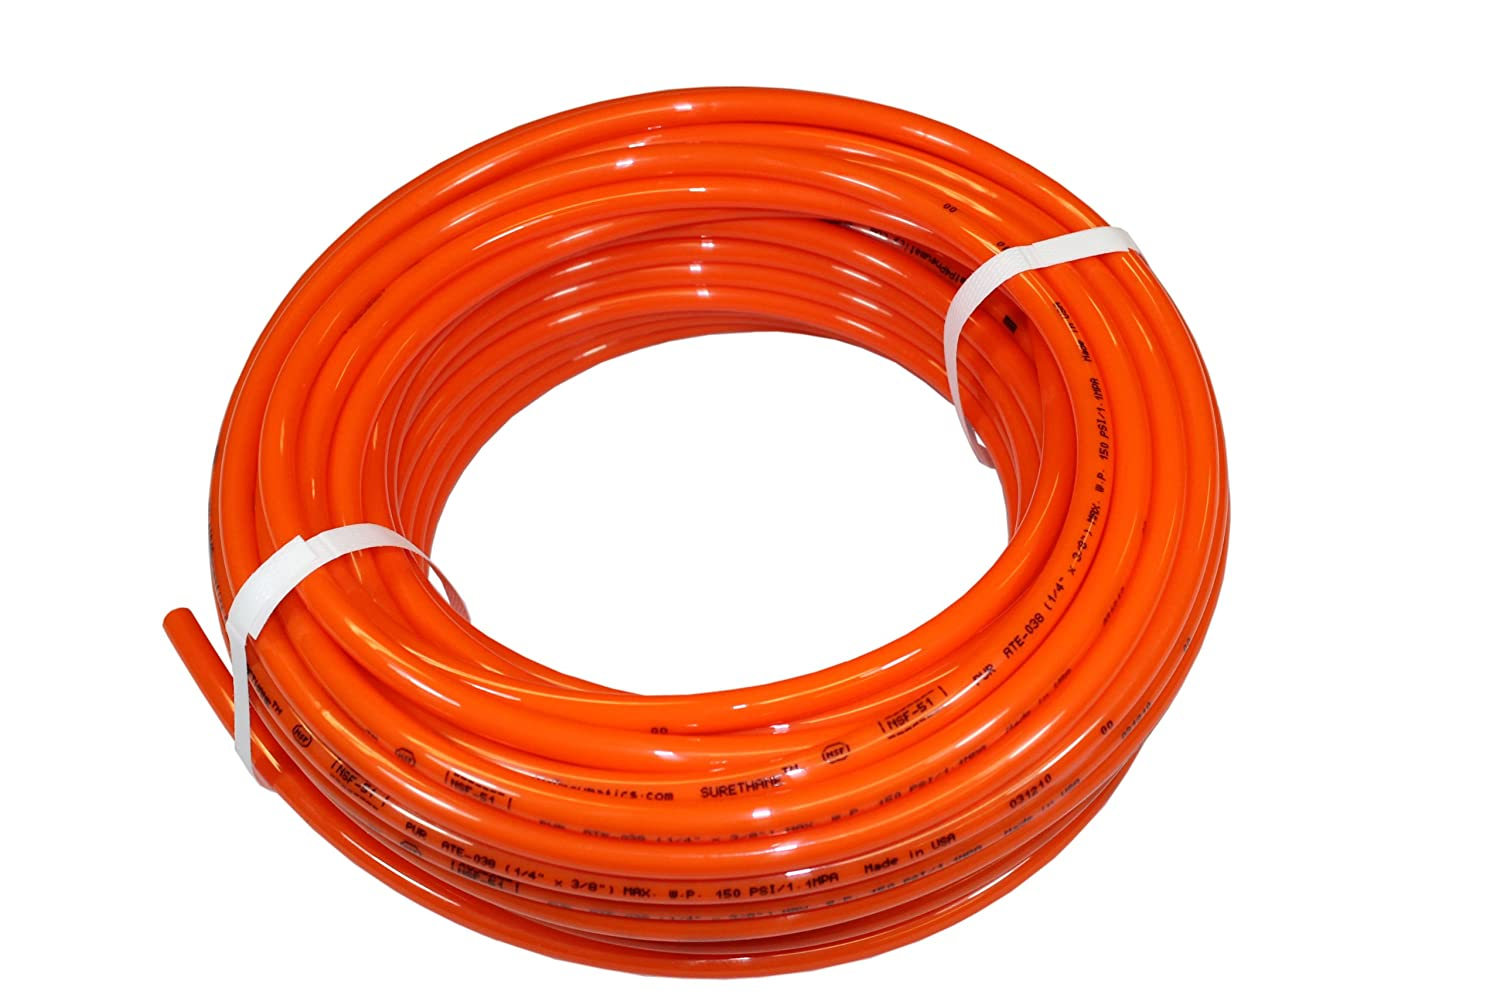 ATP 6.5 mm ID x 10 mm OD PU10MEOR ATP Surethane Polyurethane Metric Plastic Tubing 25 meters Length Advanced Technology Products Orange